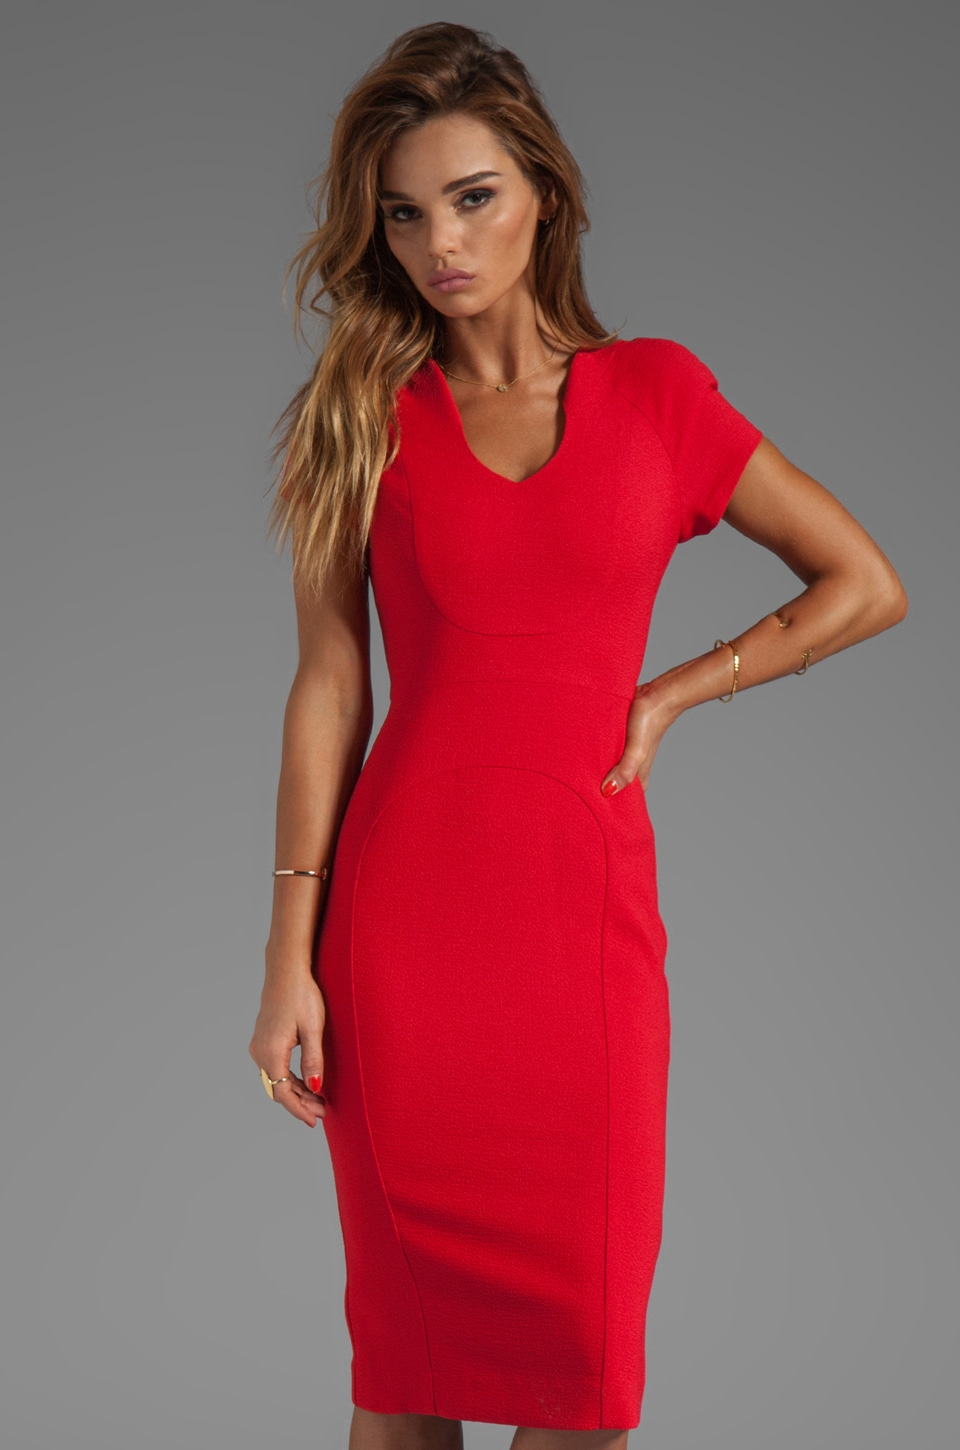 Black Halo Gypsy Rose Sheath Dress in Wildfire | REVOLVE